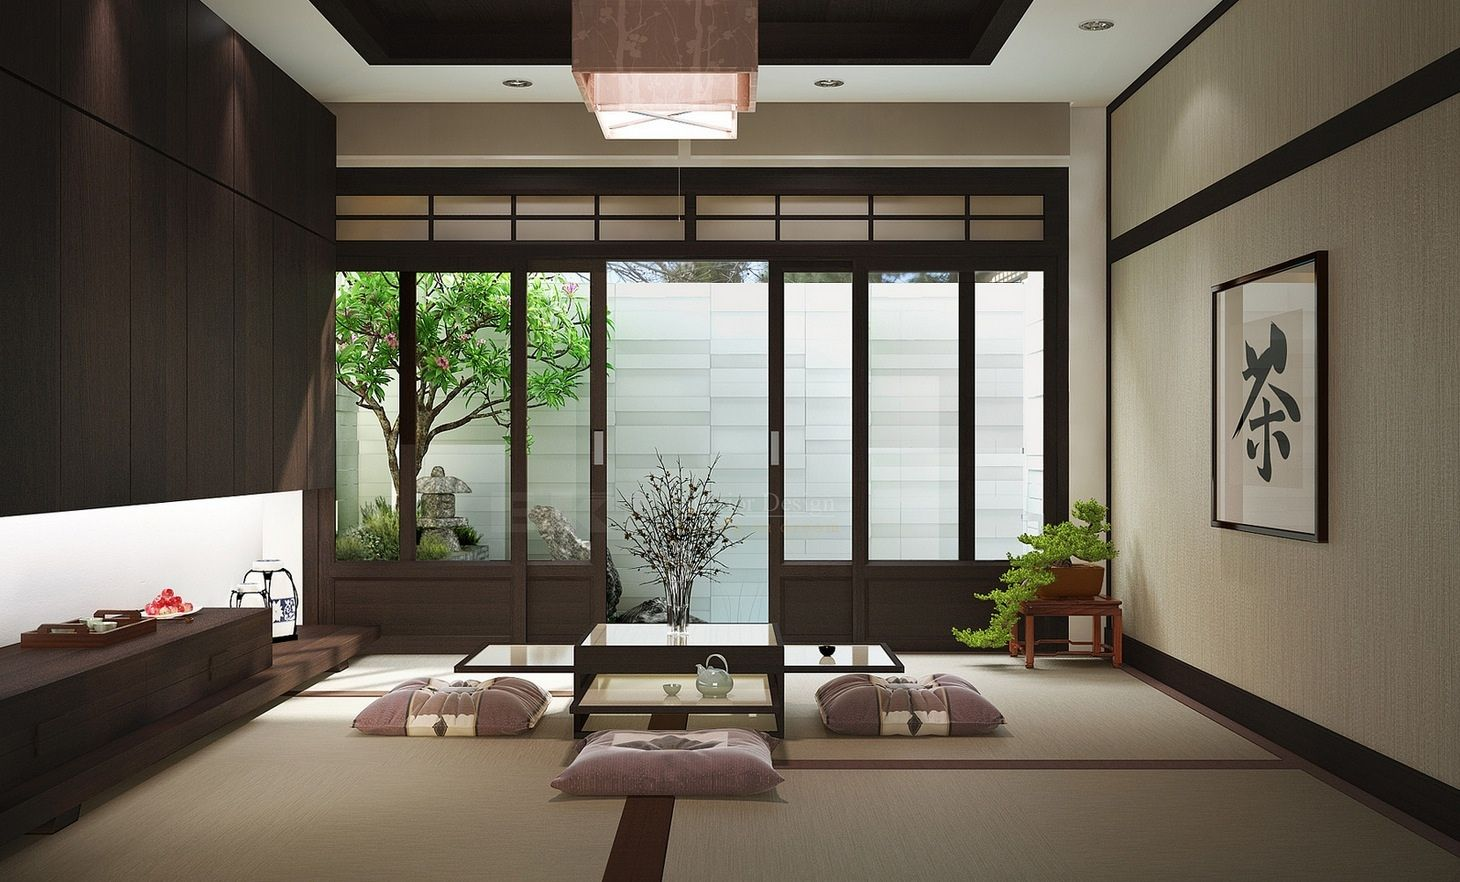 10 Things To Know Before Remodeling Your Interior Into Japanese Style Zen Interiors Zen Living Rooms Minimalist Living Room